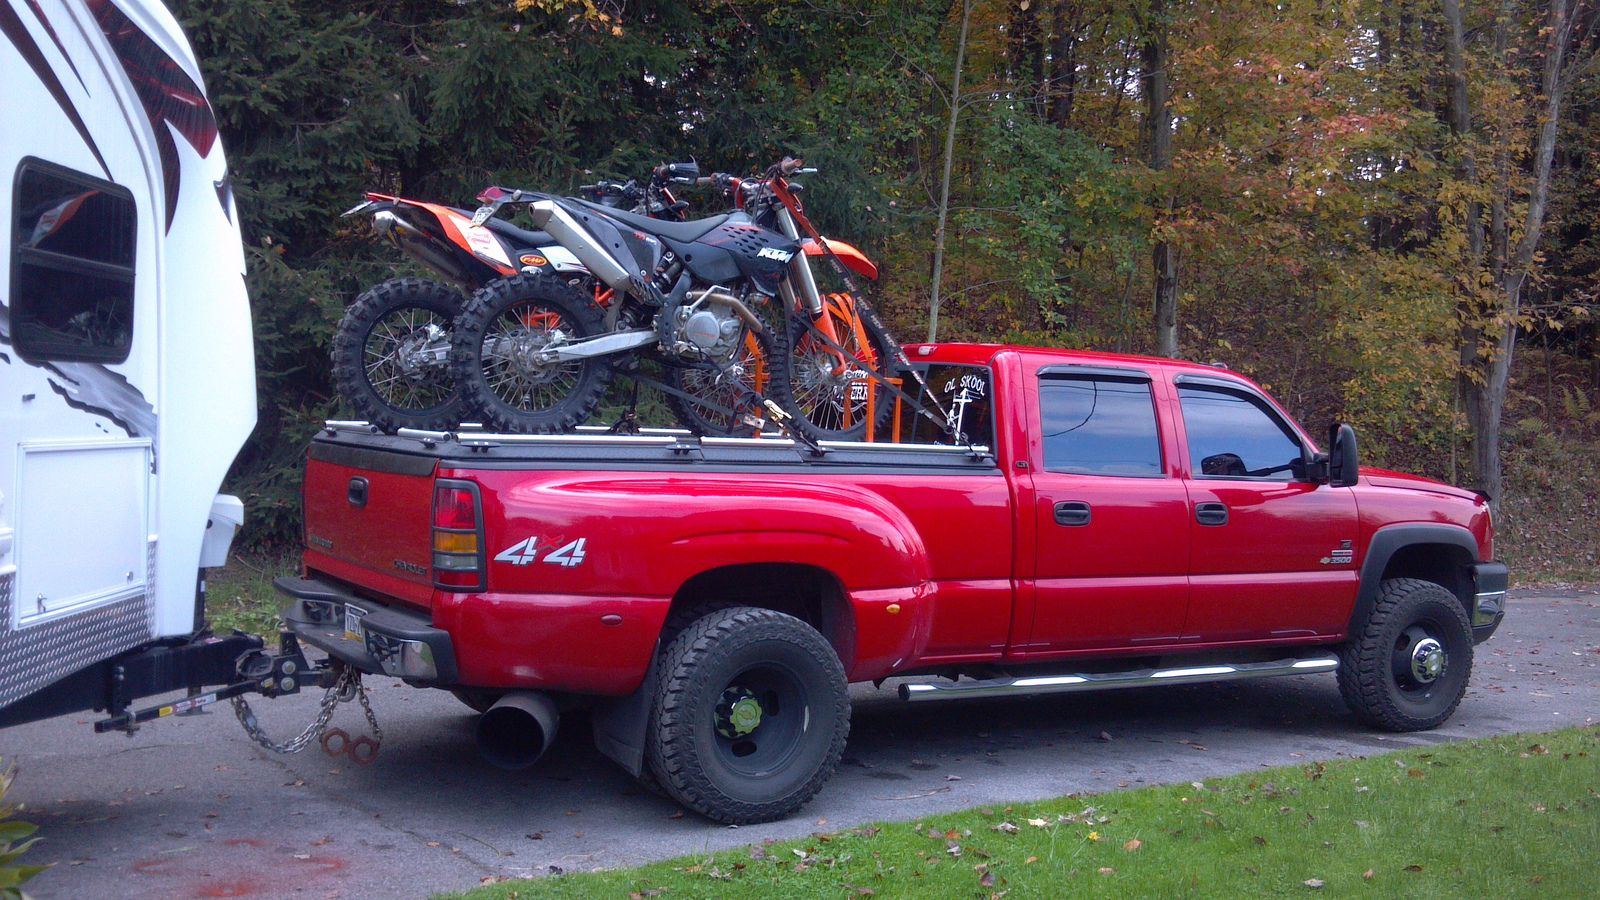 Dirt Bikes on Black HeavyDuty Truck Bed Cover on Pickup